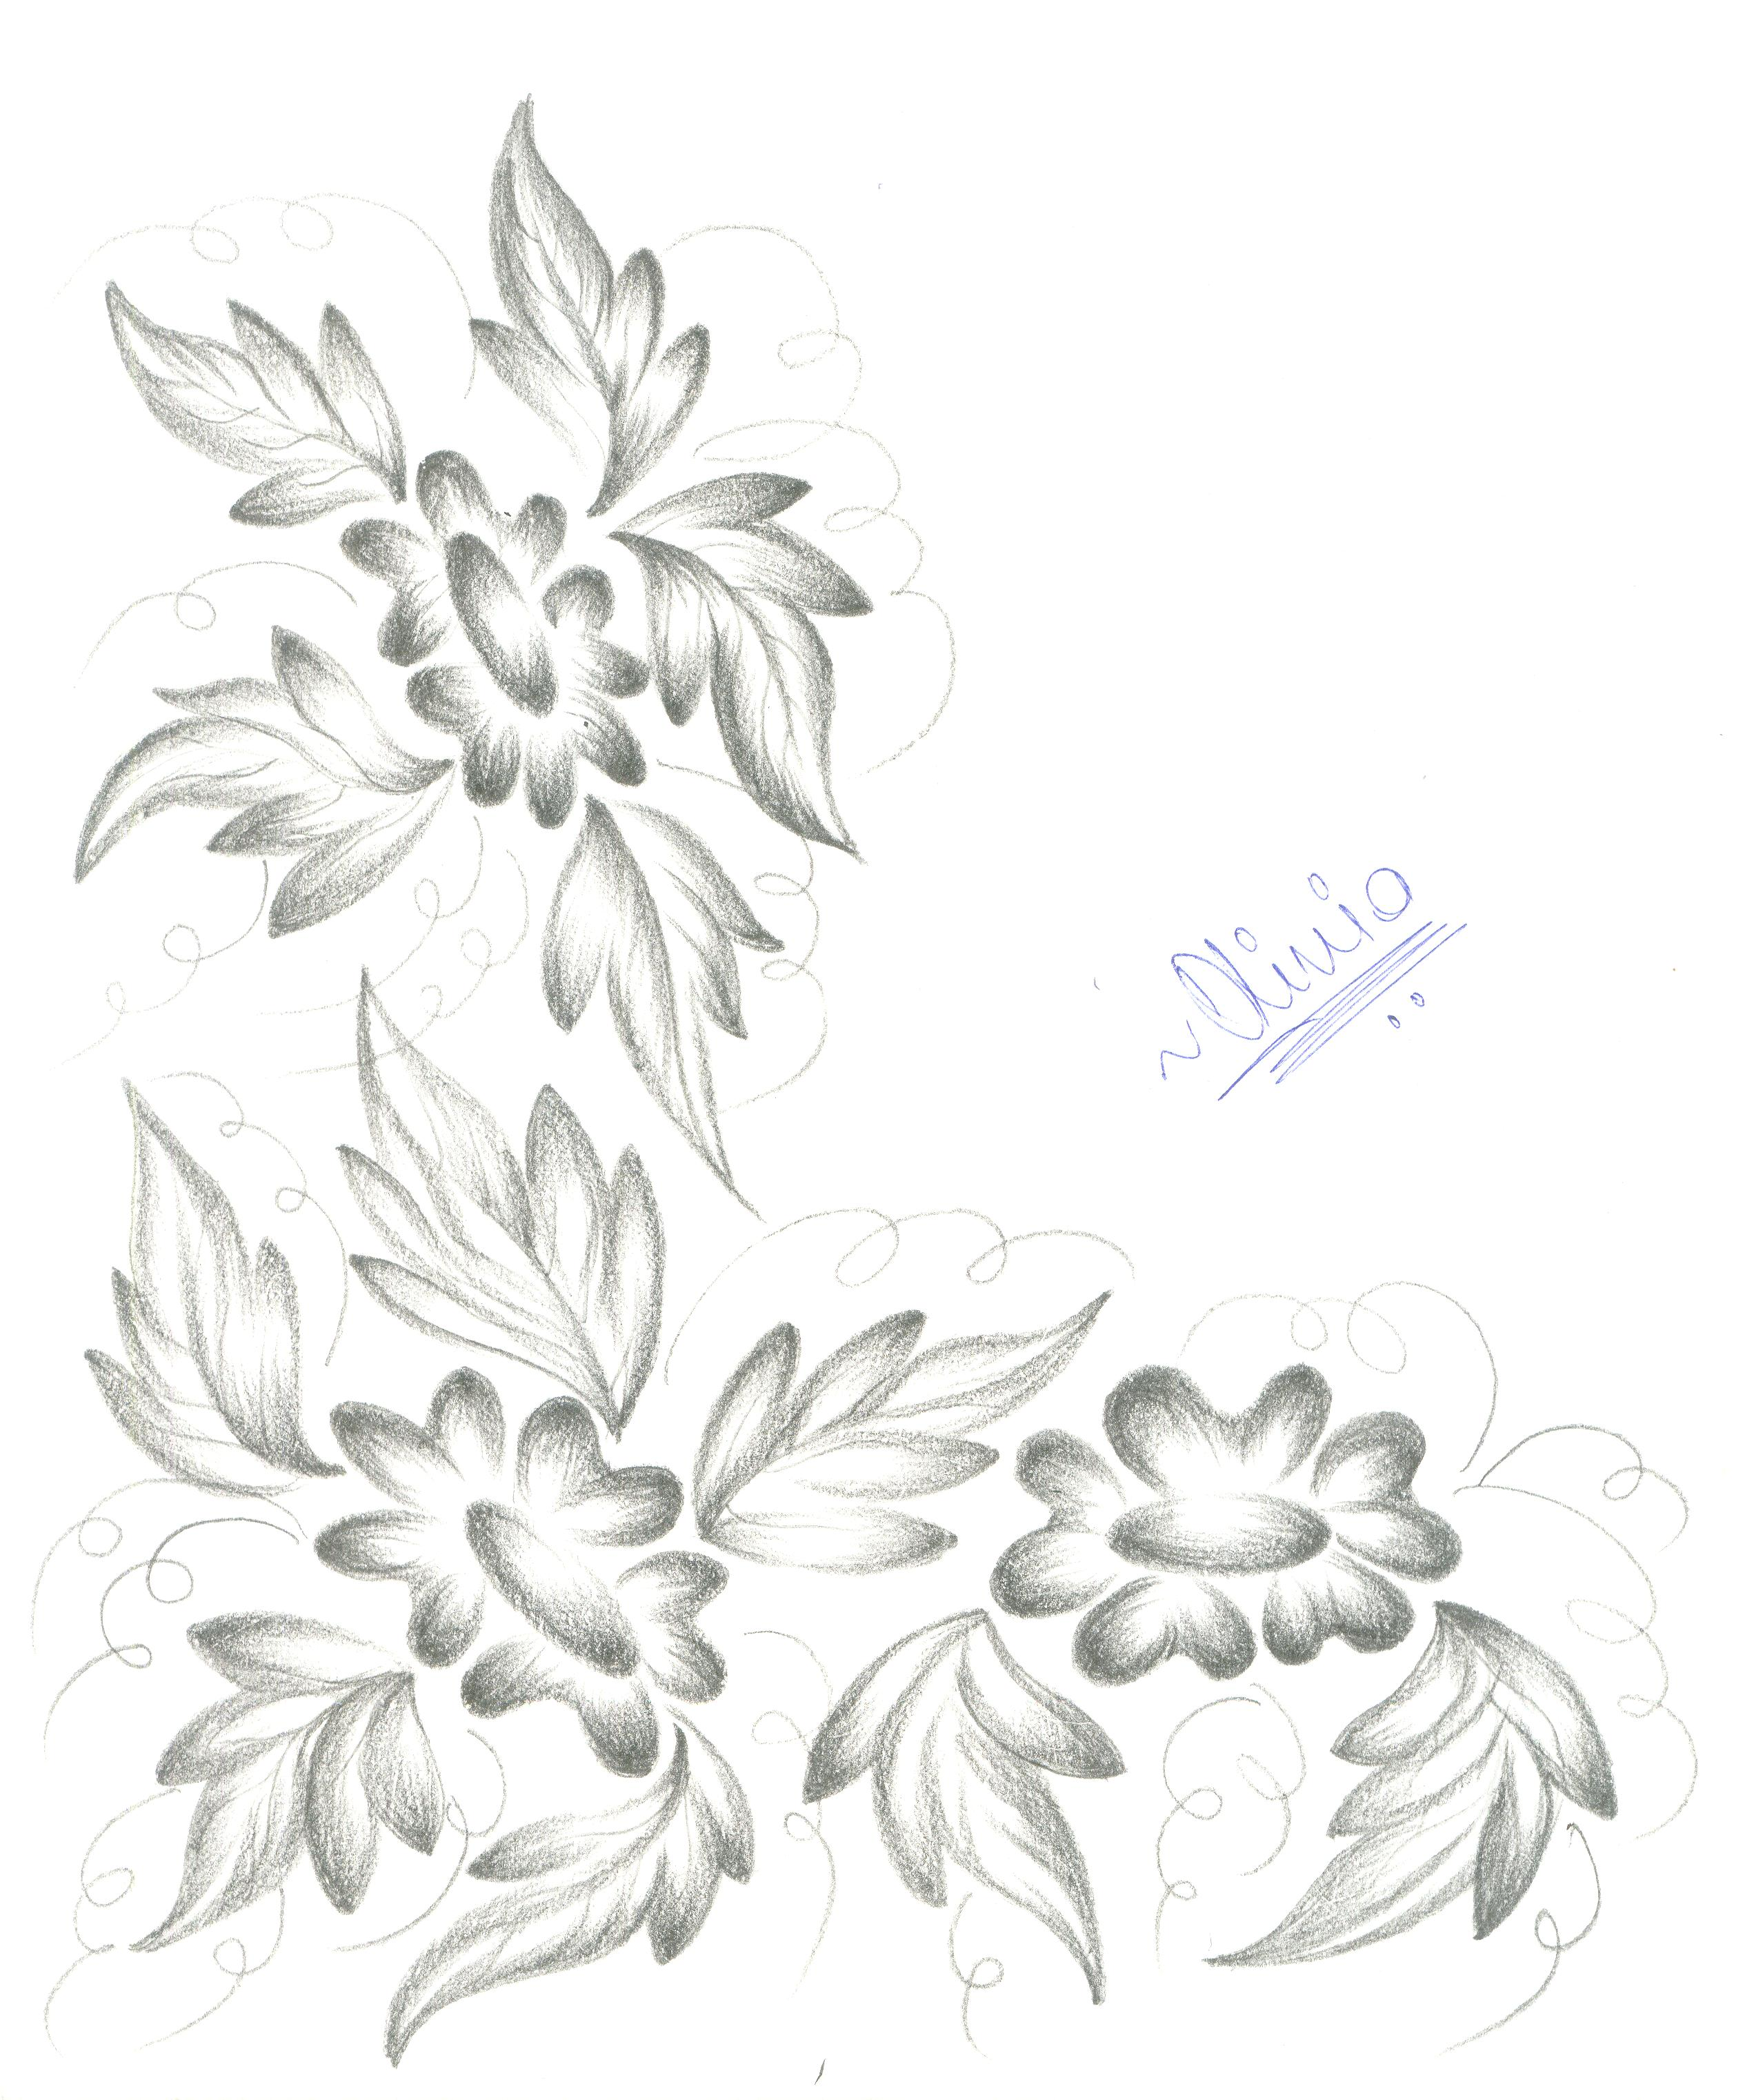 Greeting cards drawing at getdrawings free for personal use 2530x3044 greeting card olivia39s in mind whirls m4hsunfo Choice Image